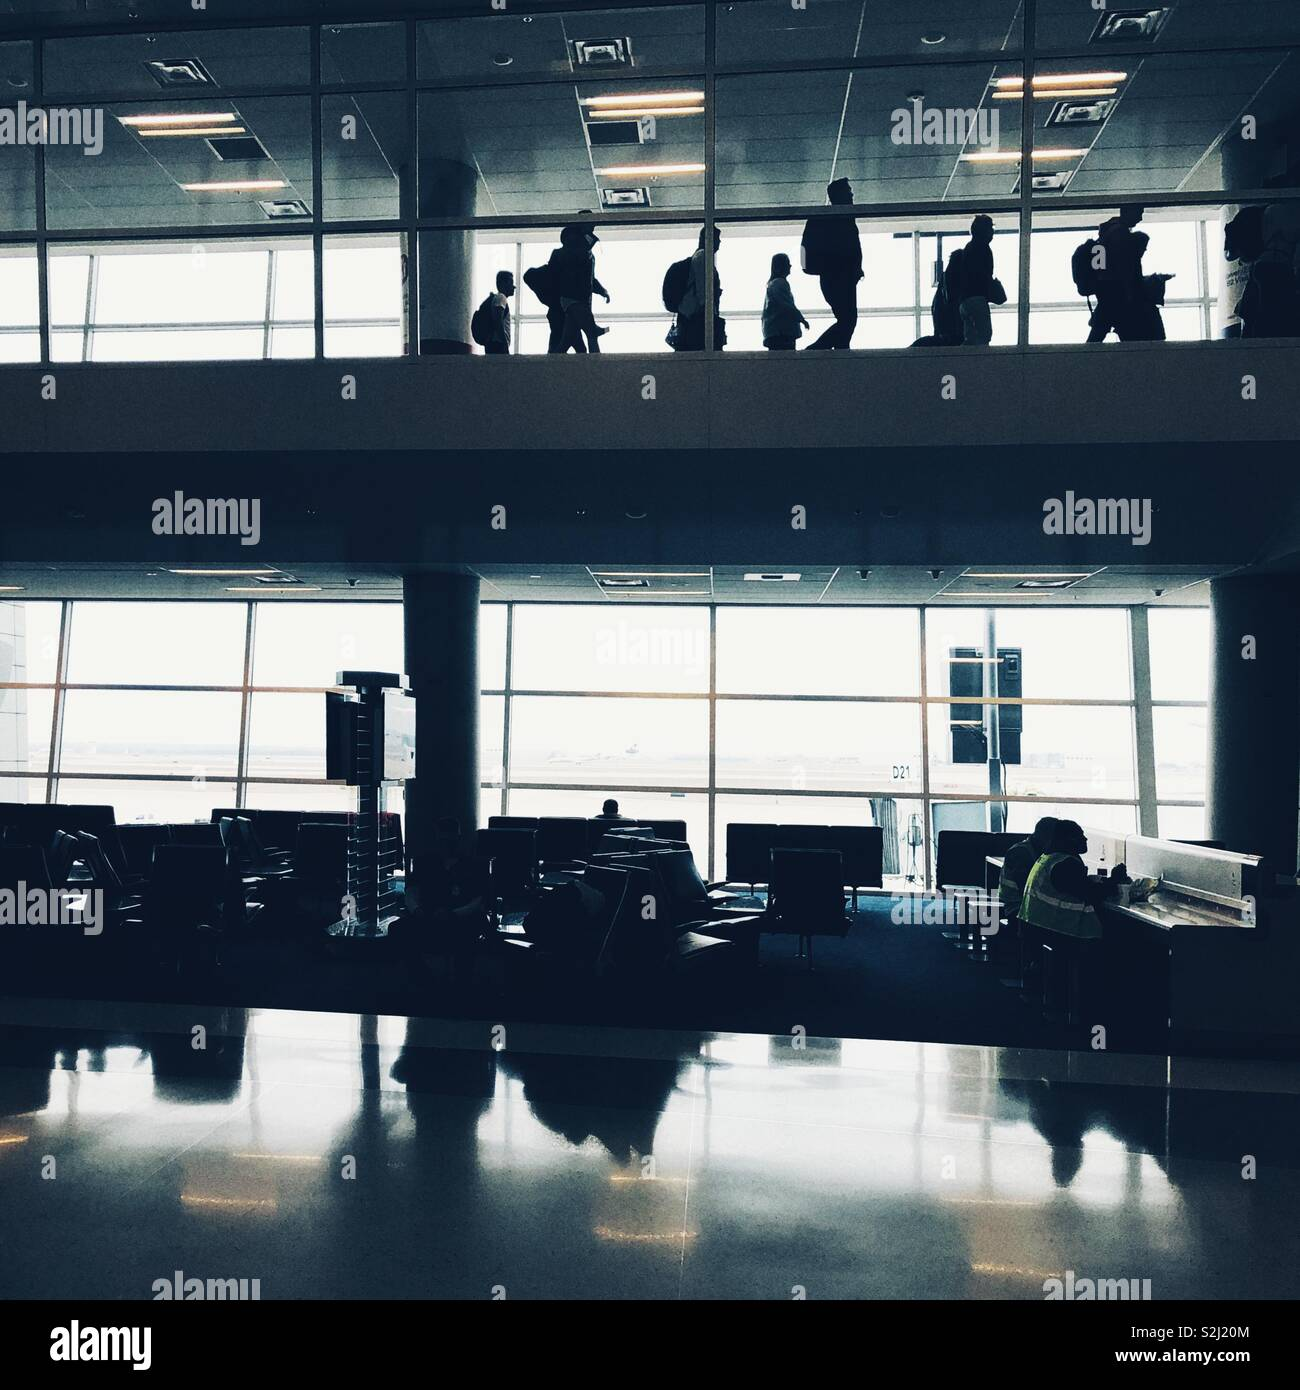 Endless airports - Stock Image